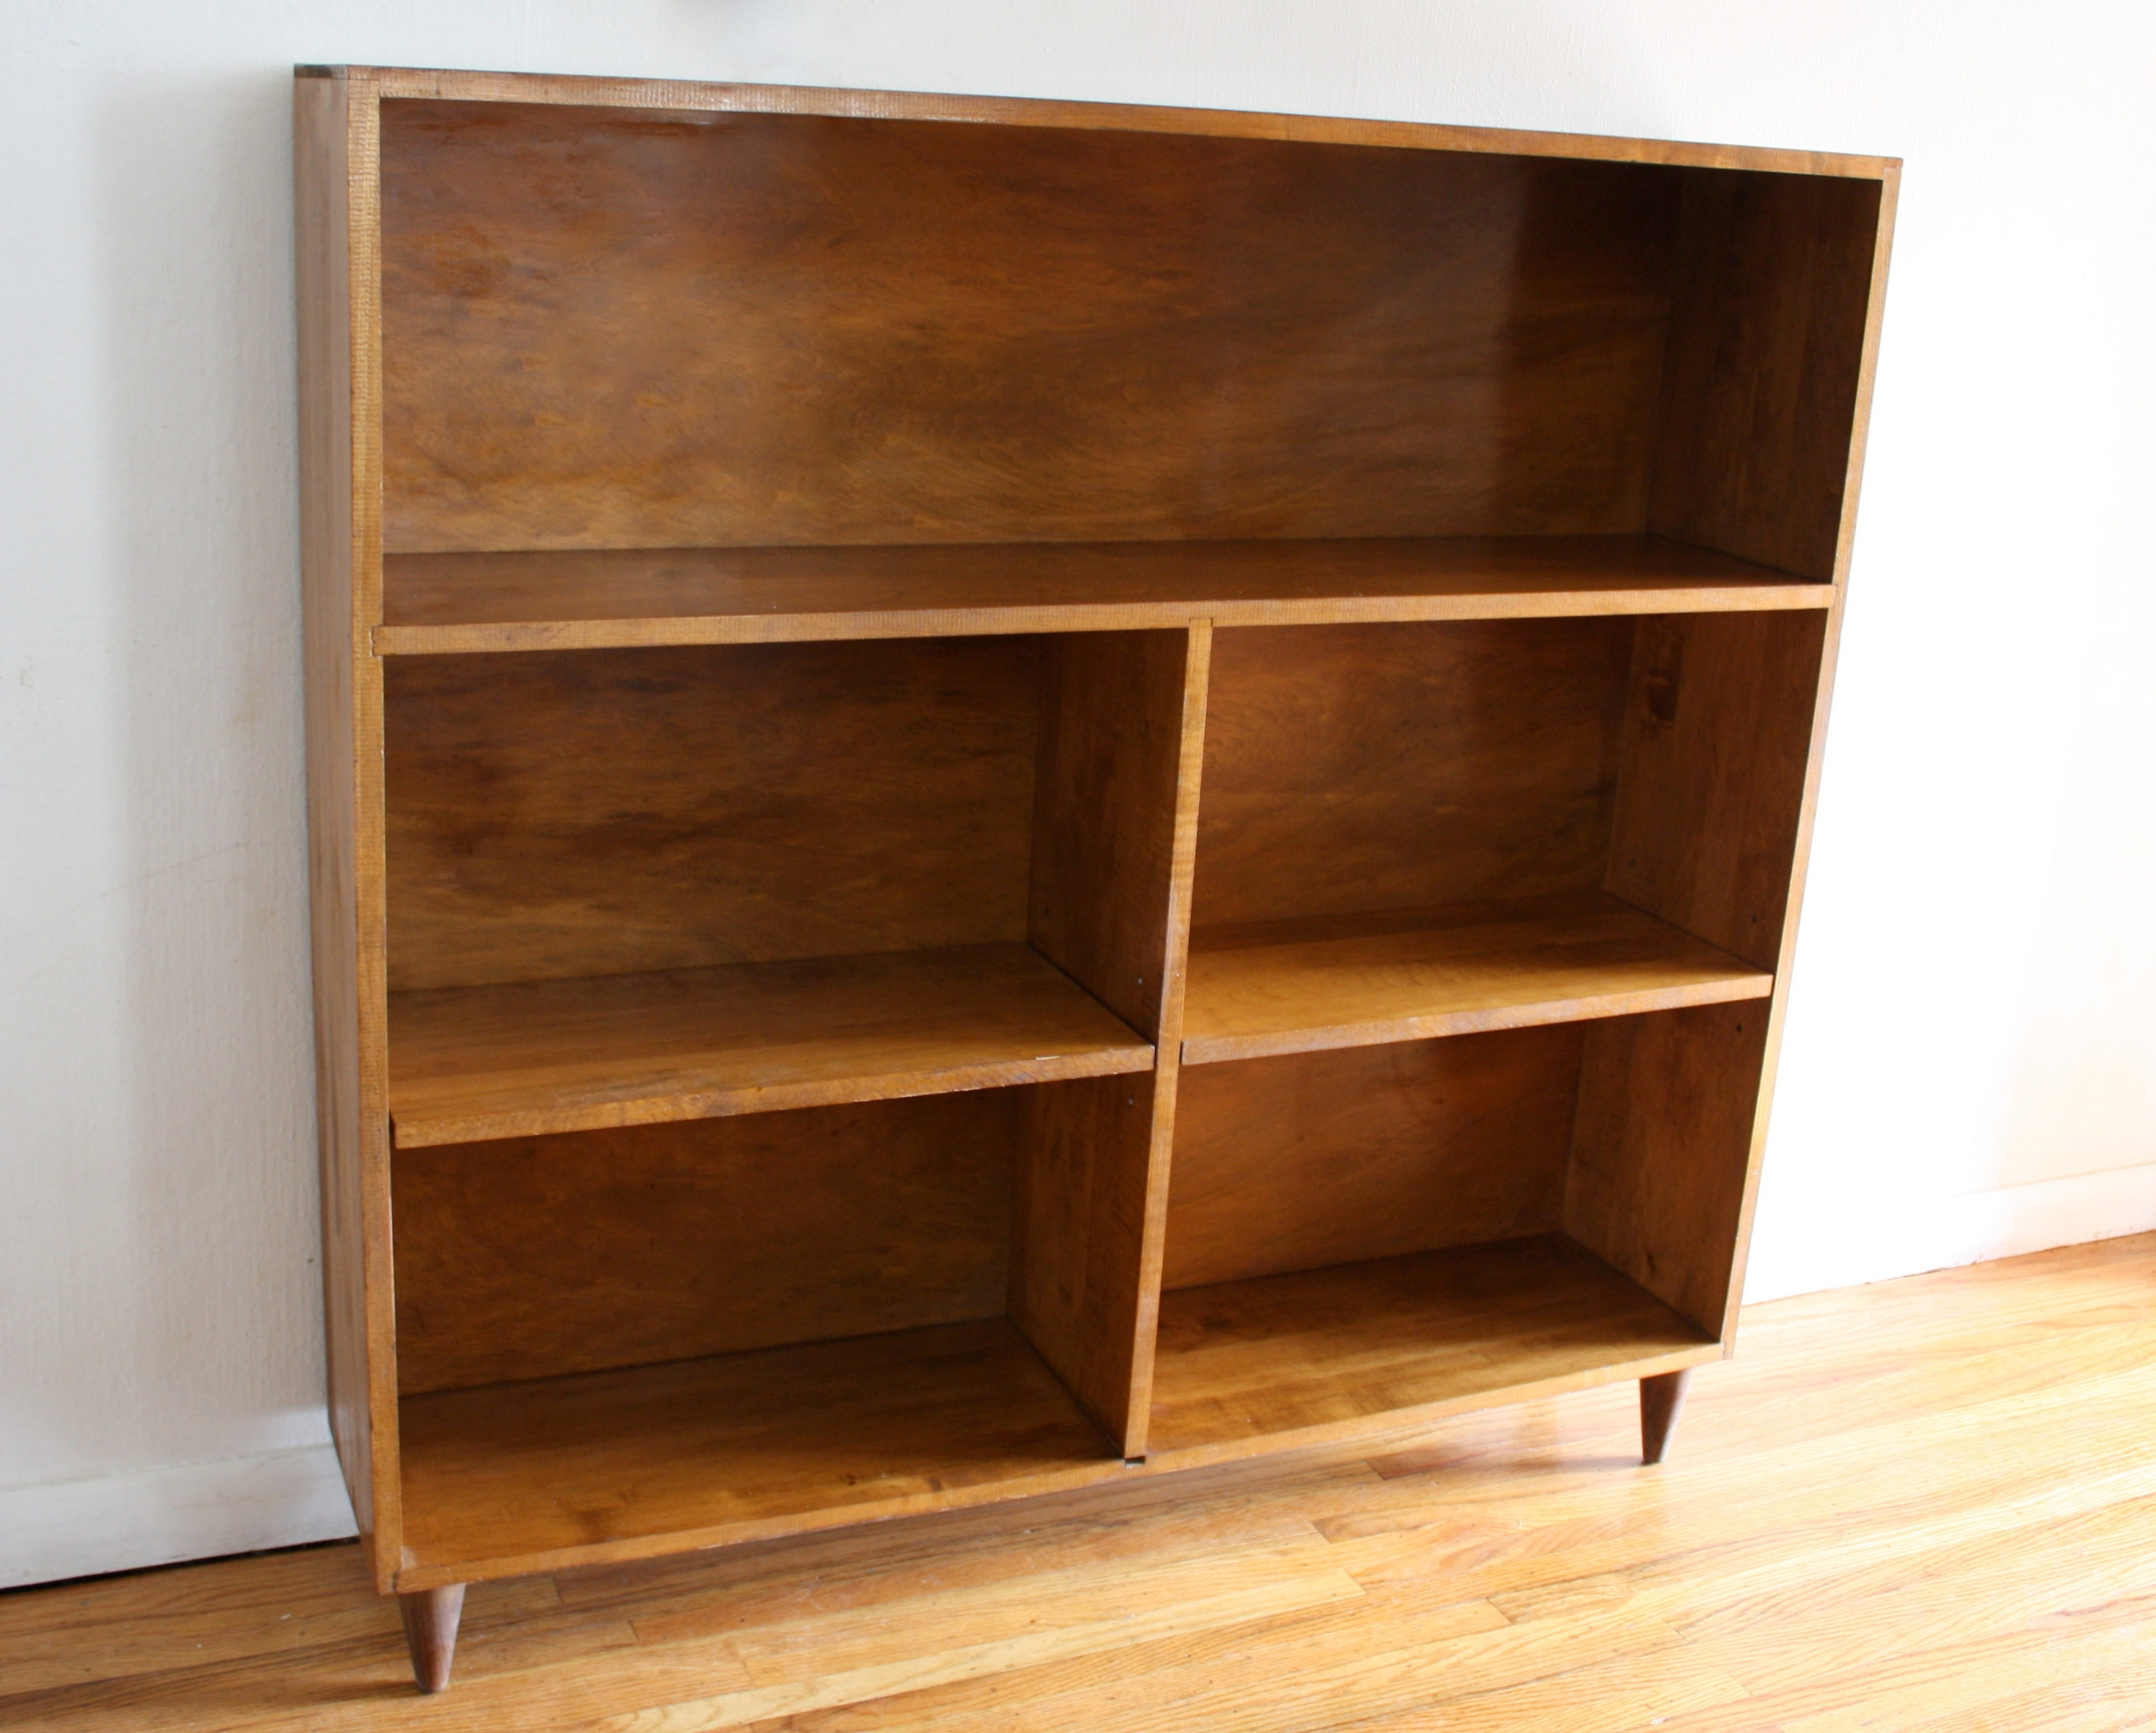 Winsome Mid Century Modern Bookshelf 74 Mid Century Modern Throughout Most Current Midcentury Bookcases (View 4 of 15)